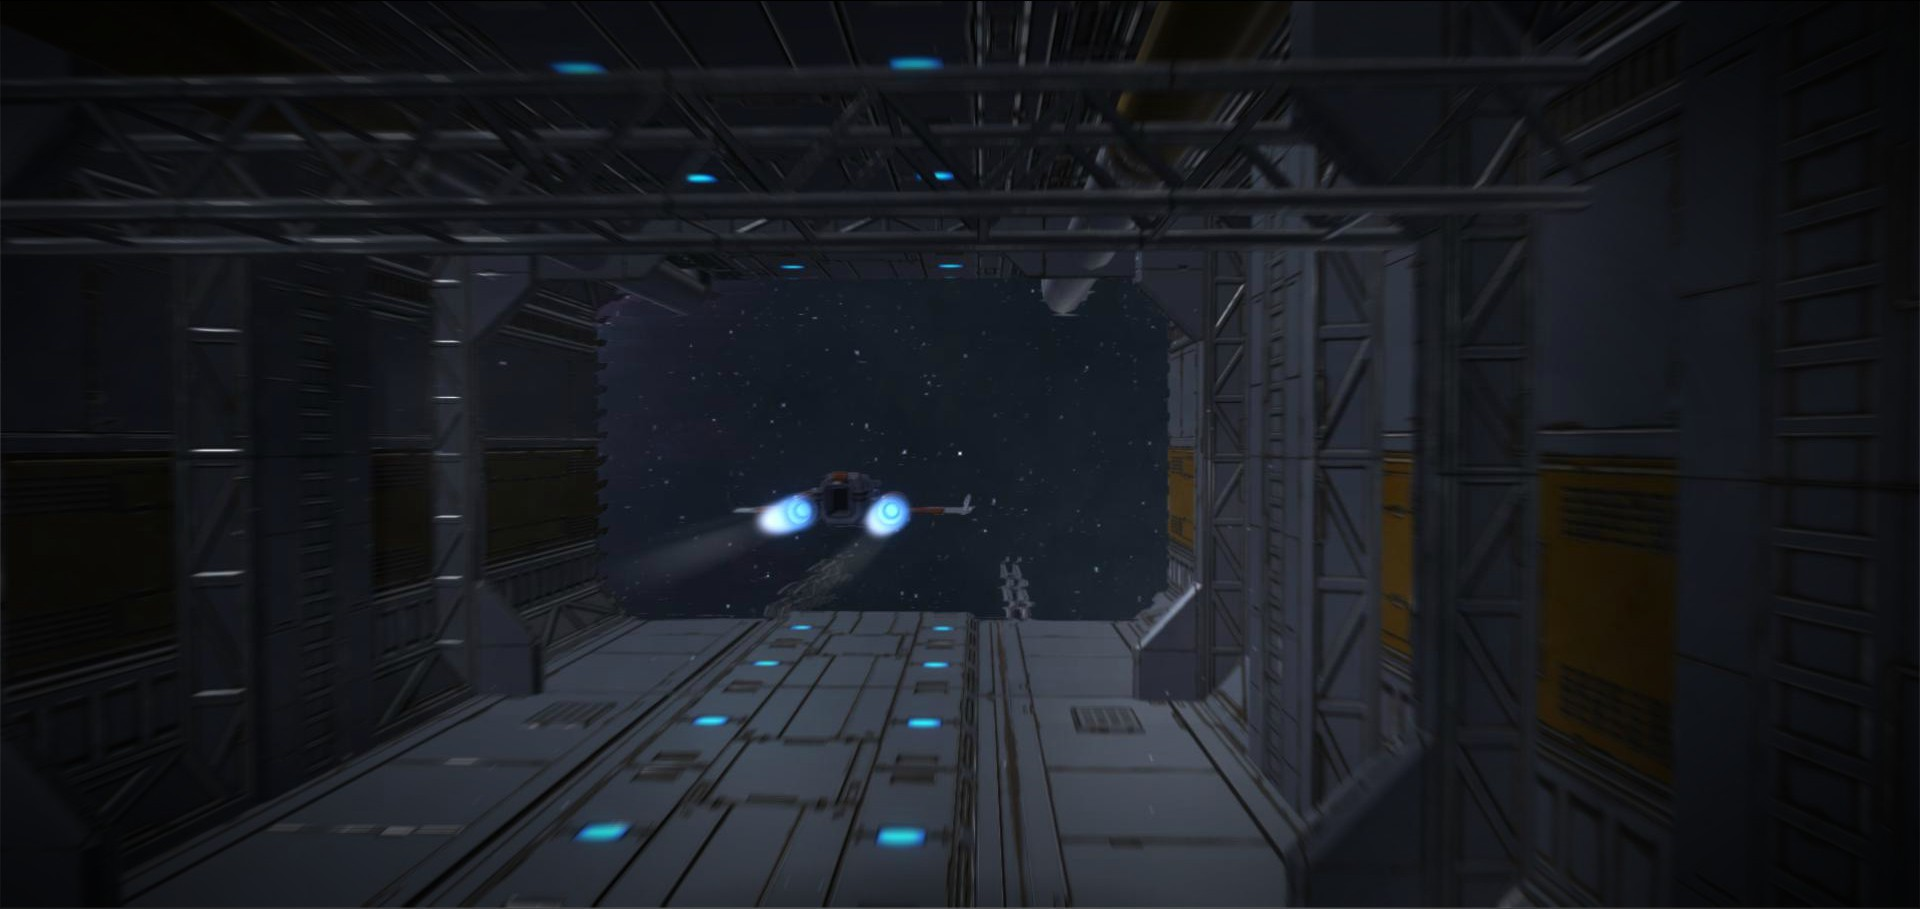 Space Journey screenshot